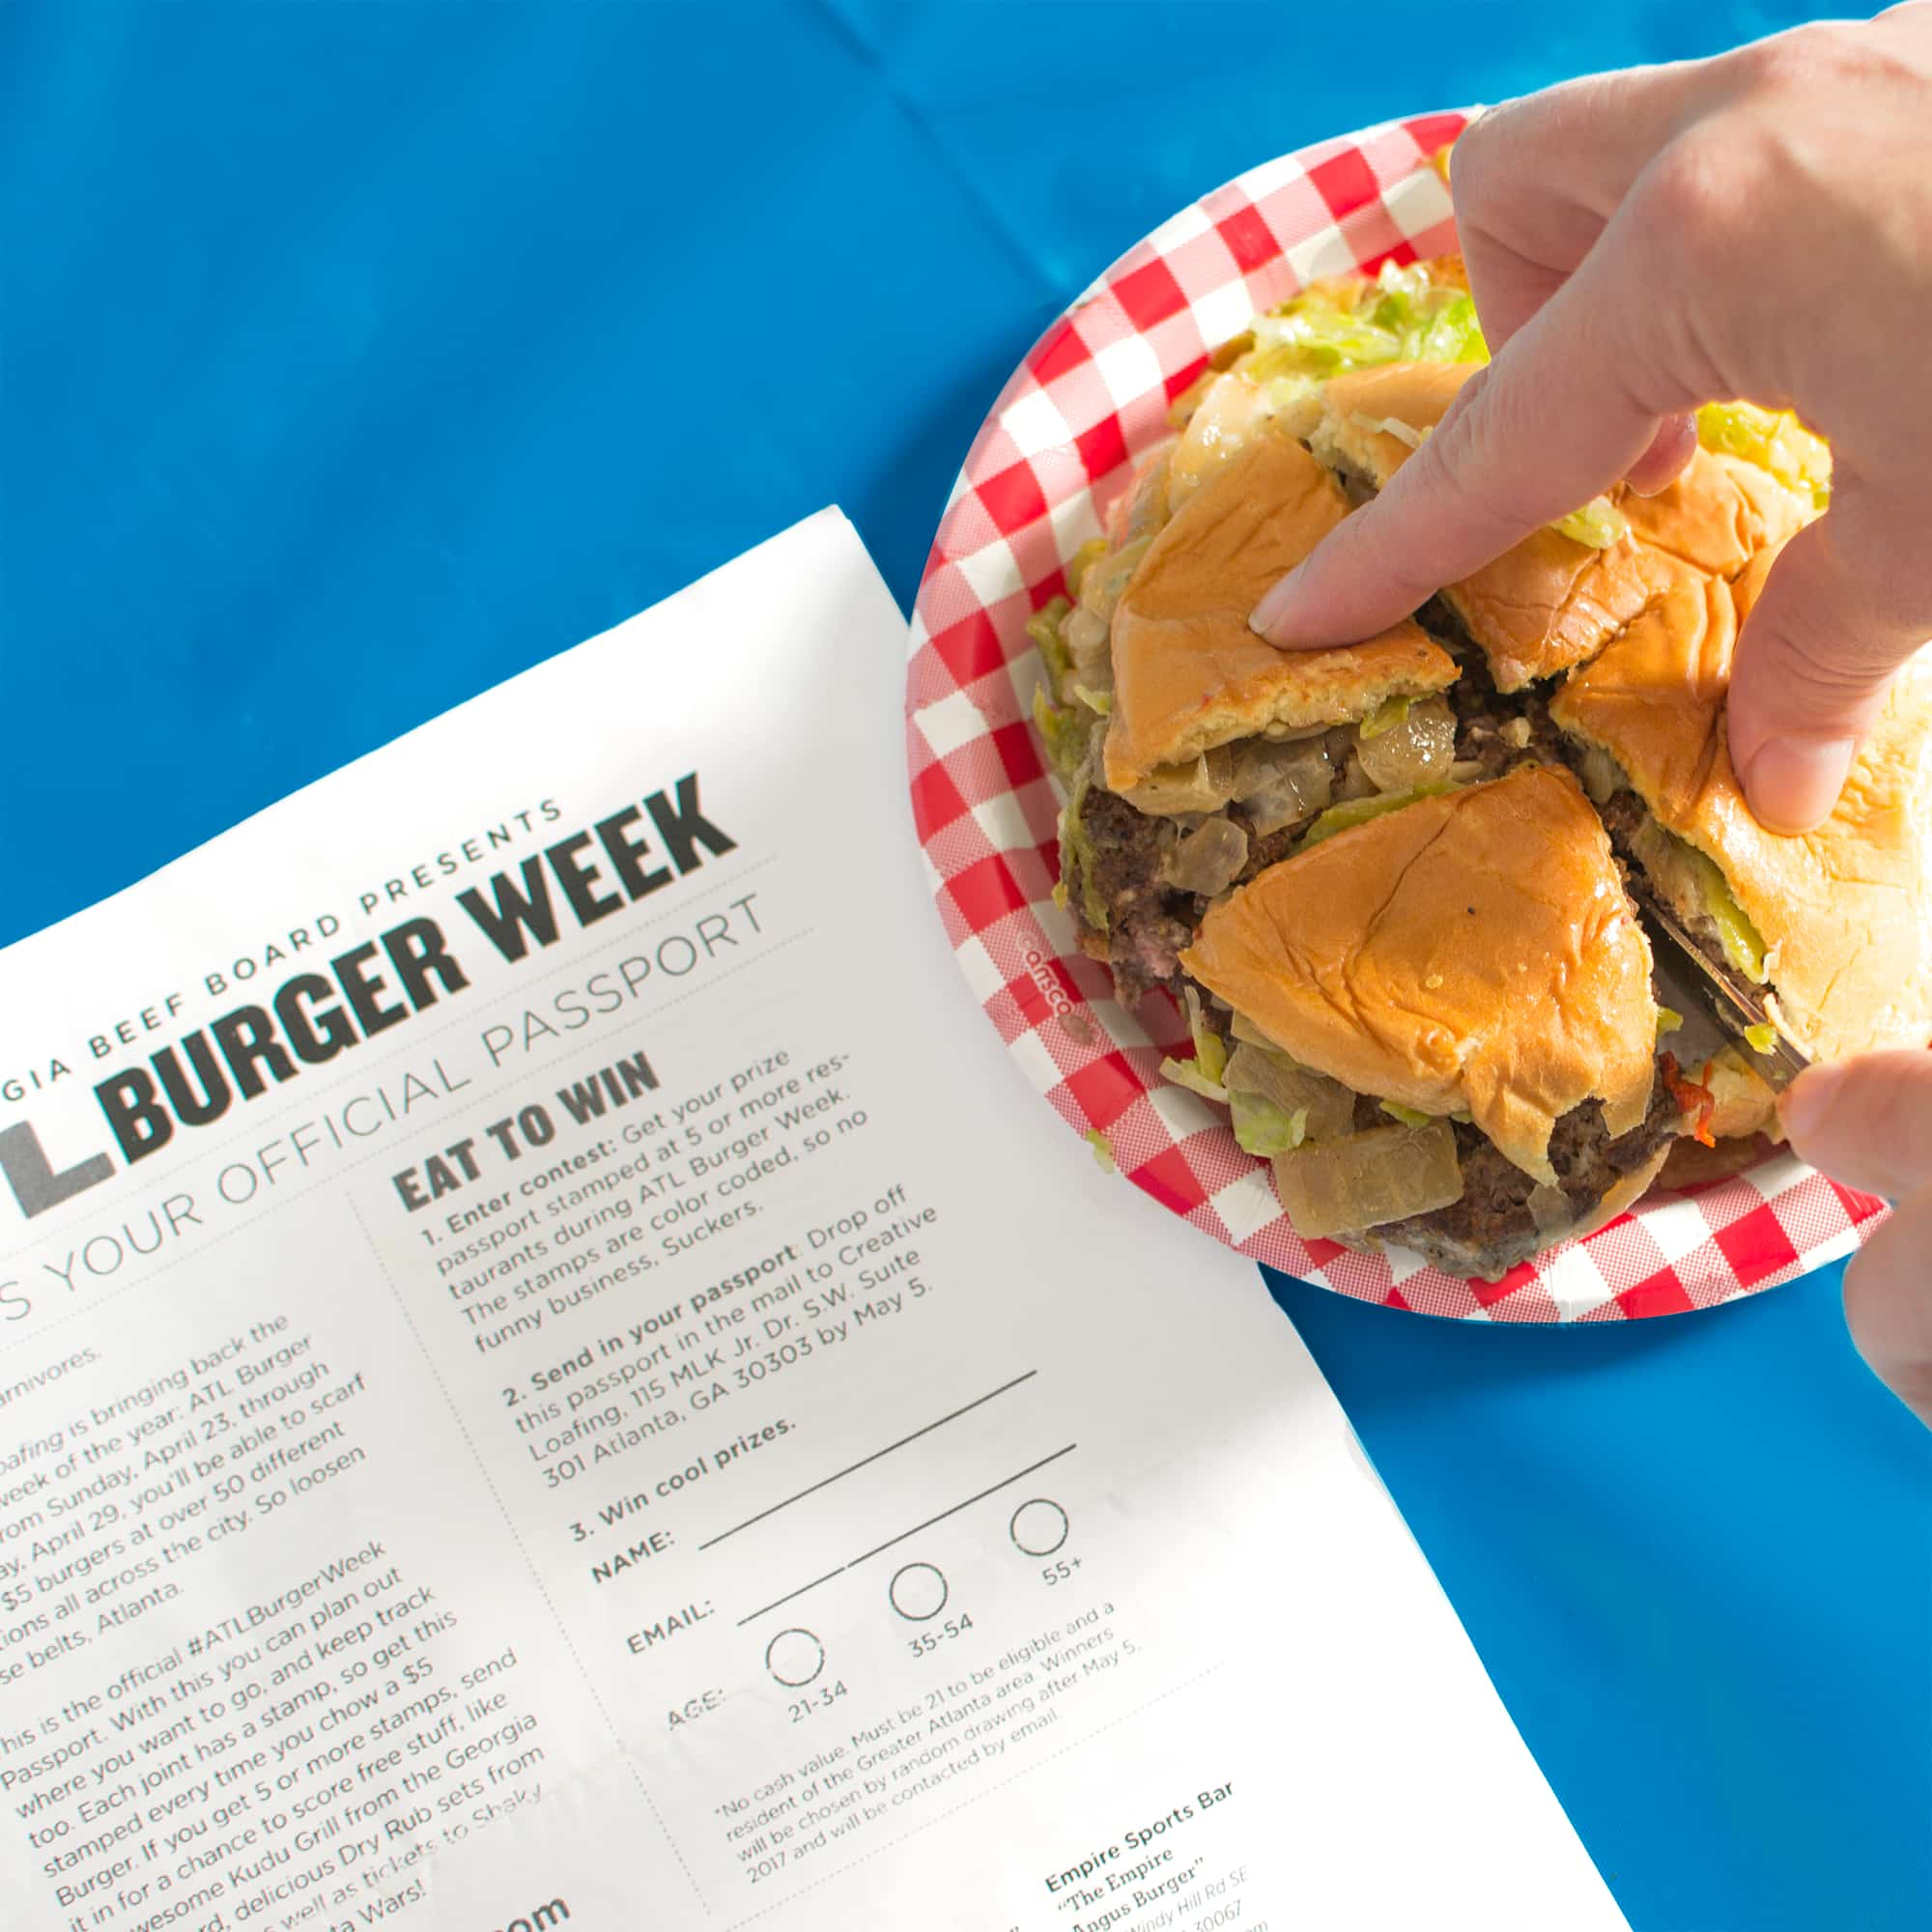 Displaying the Atlanta Burger Week official passport.